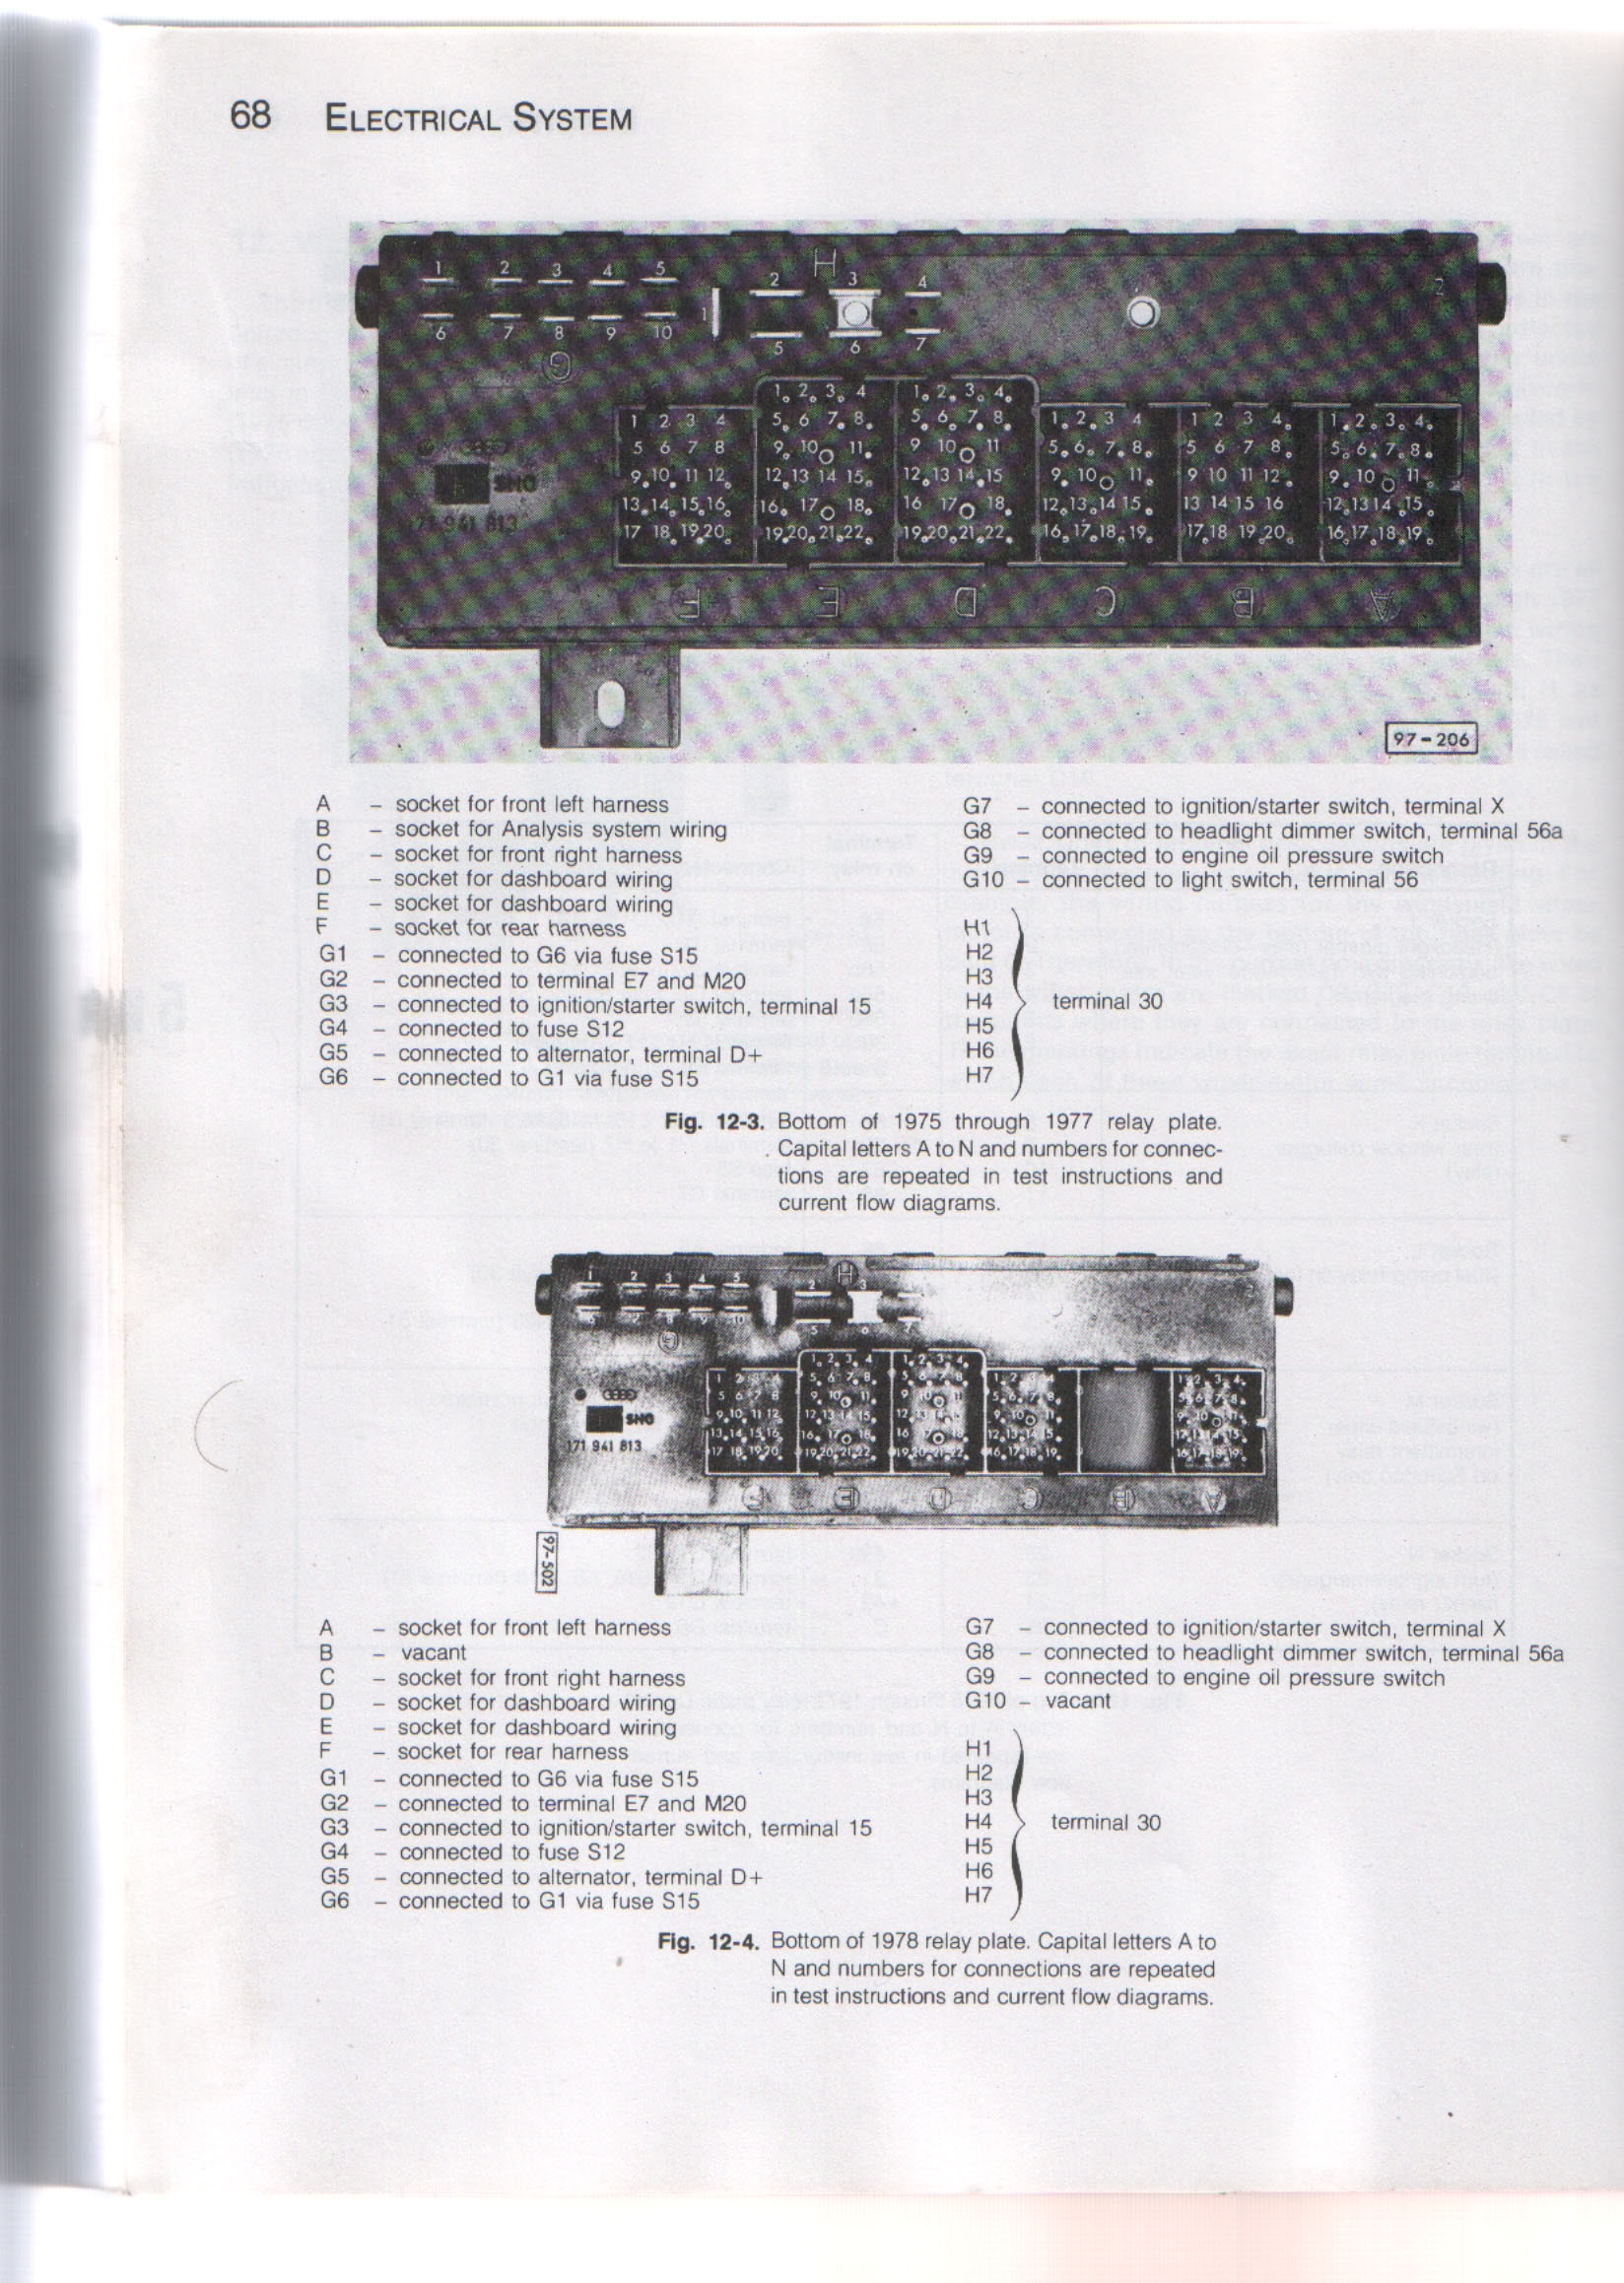 2009 vw rabbit fuse box diagram gAYbQTL 2007 vw rabbit fuse box diagram image details 1982 vw rabbit fuse box at gsmportal.co